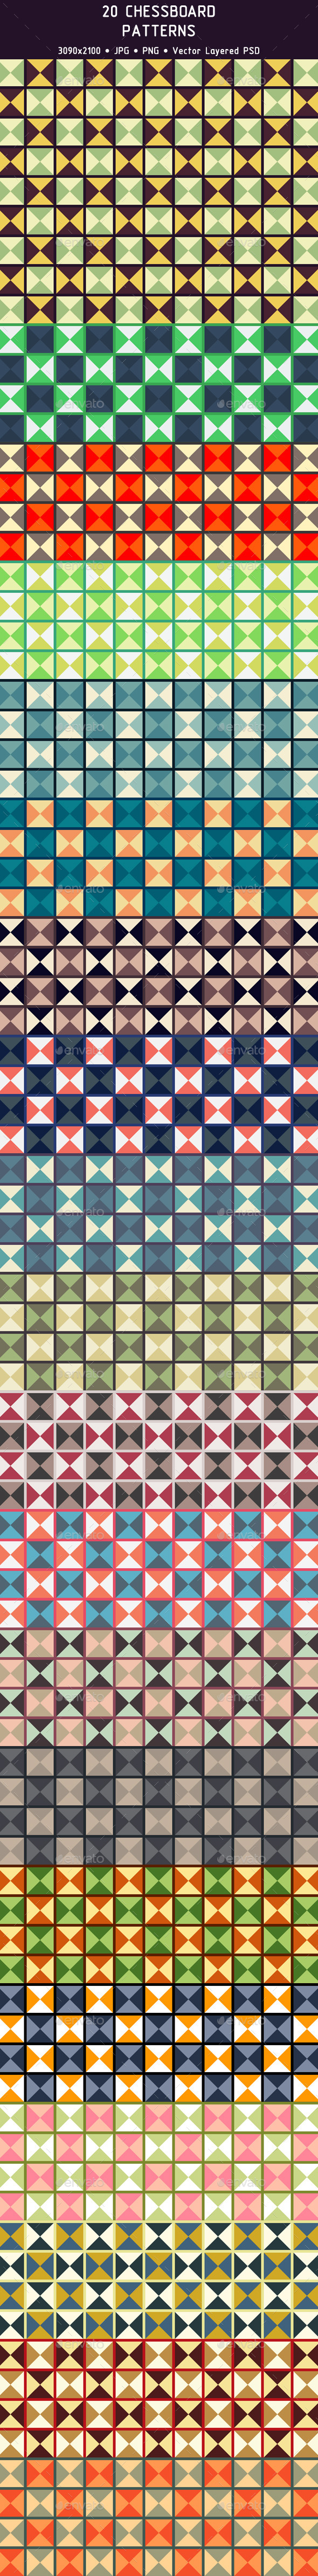 20 Chessboard Patterns